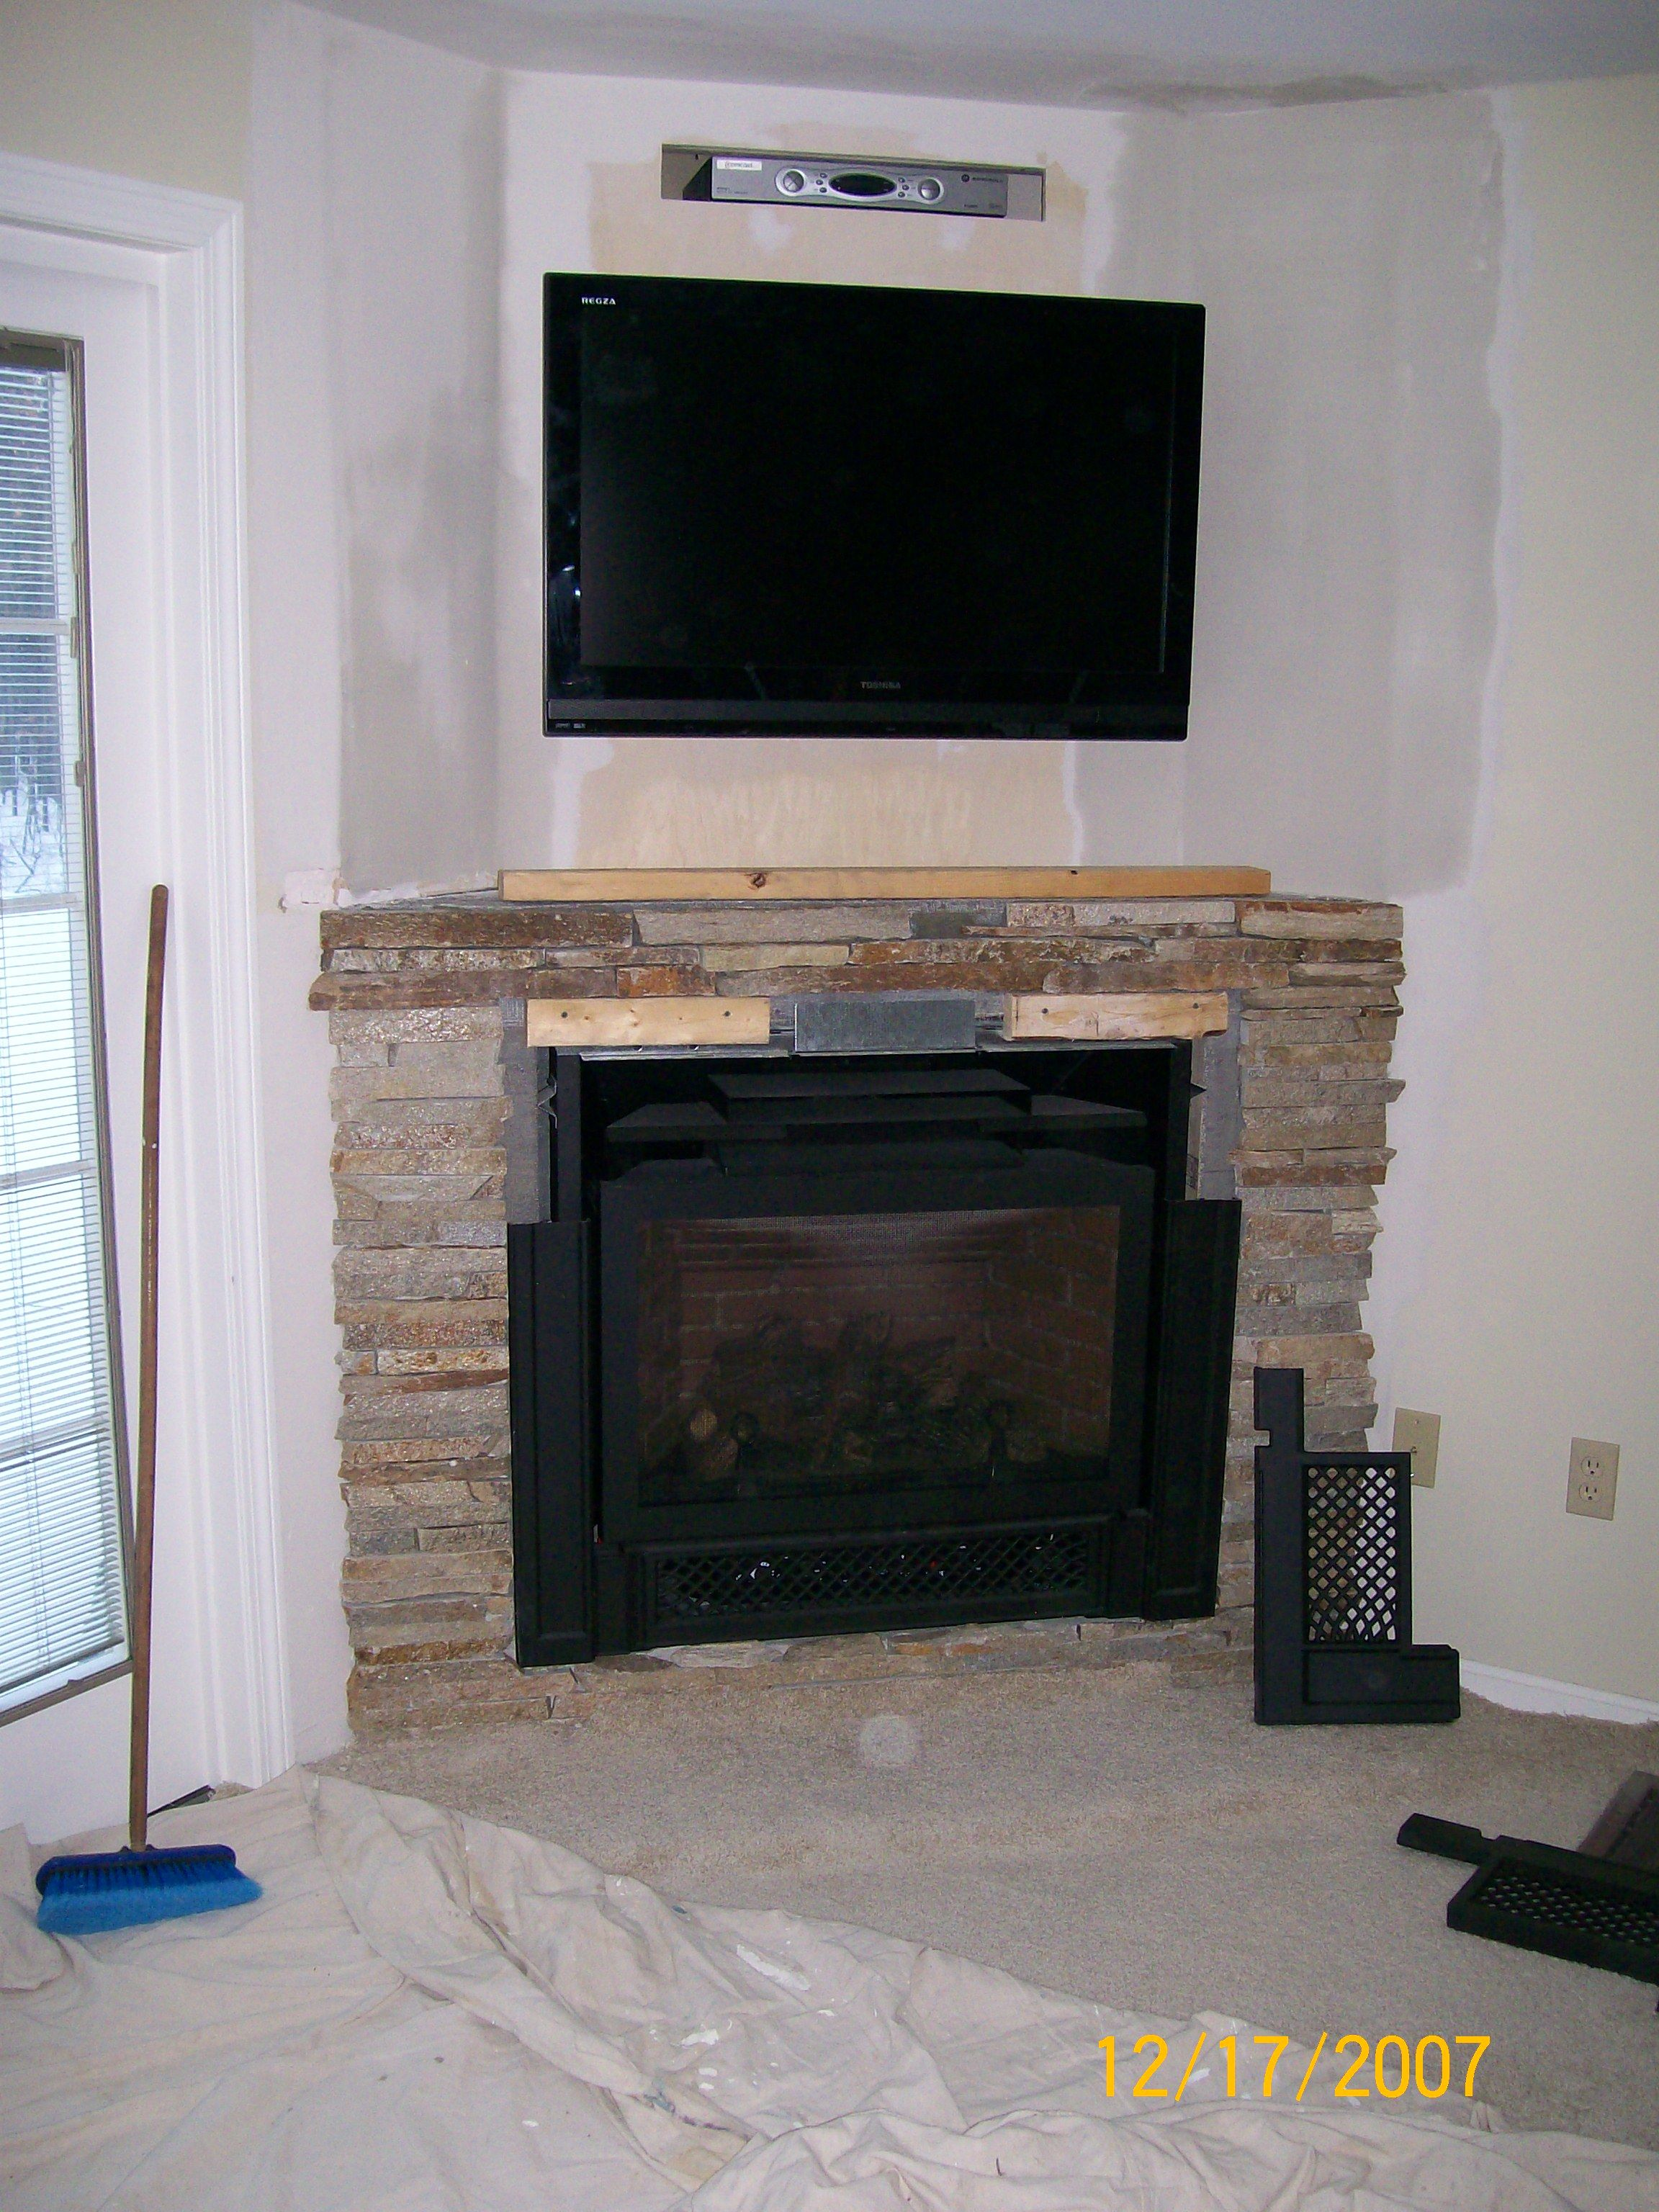 Corner Gas Fireplace Design Ideas contemporry corner fireplaces modern design ideas for round corner fireplaces Corner Fireplaces And Finally A Gas Fireplace In An Unused Corner With A Flat Screen